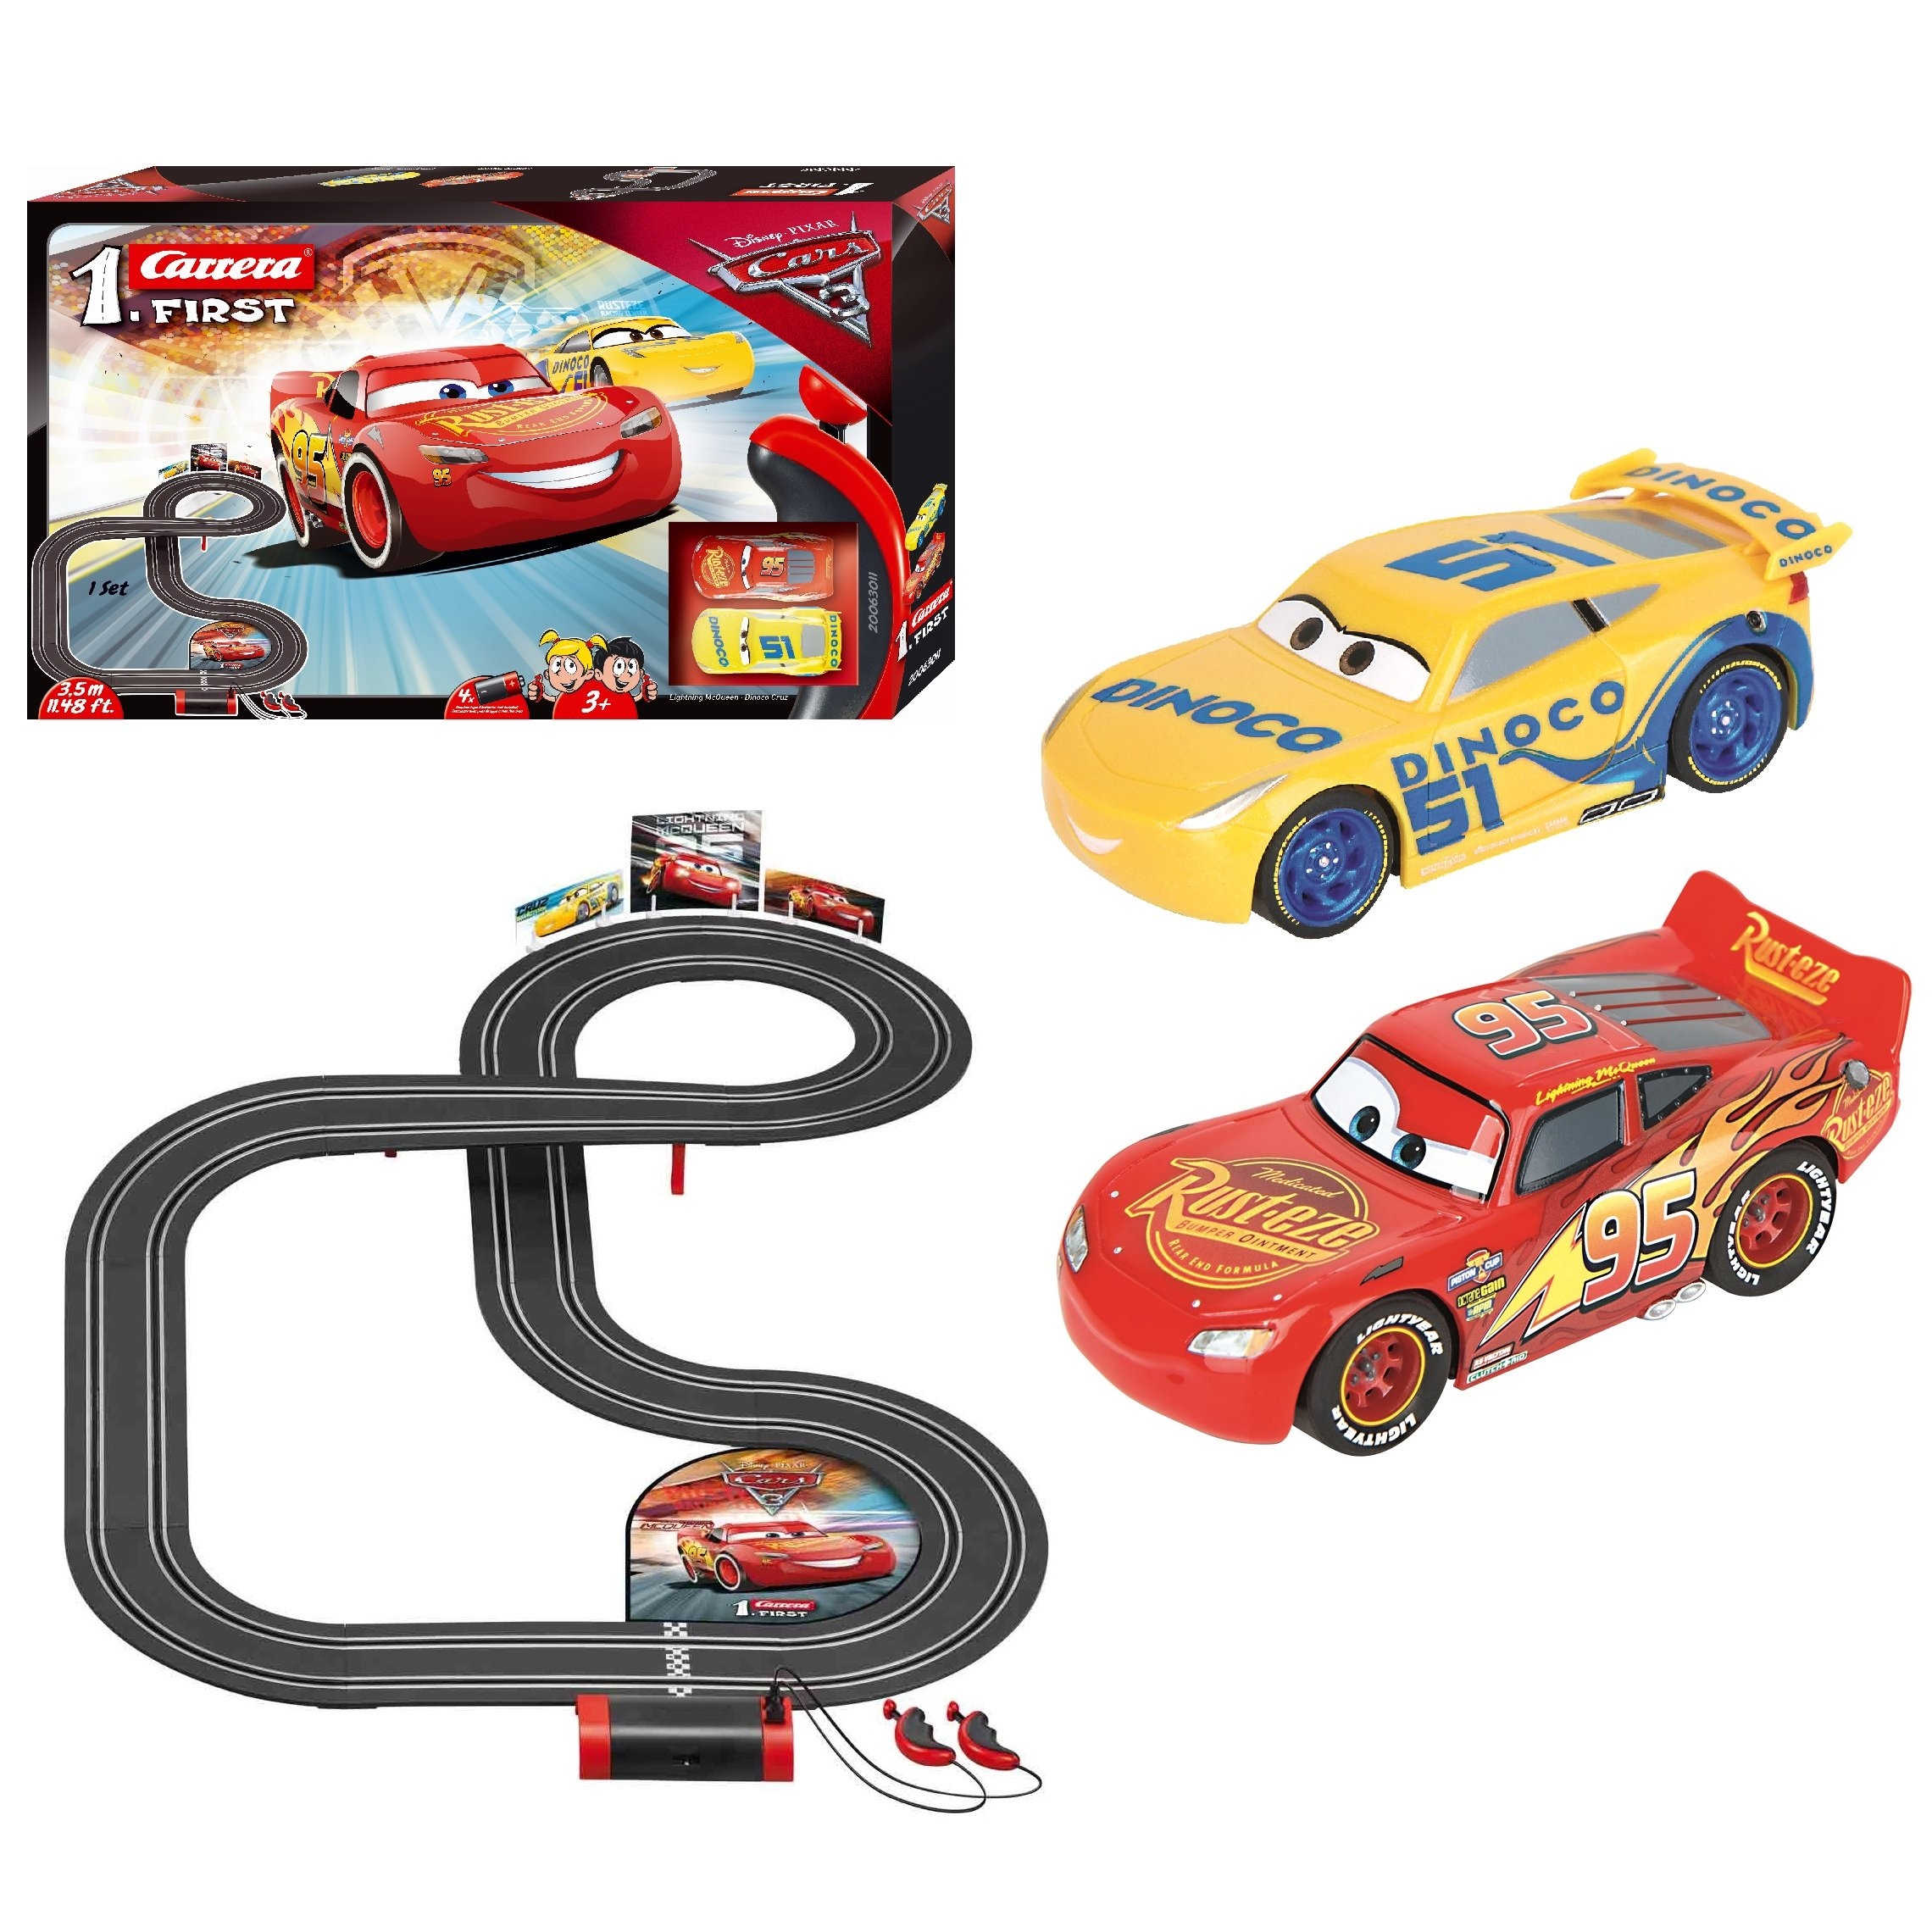 CARRERA FIRST - DISNEY CARS 3